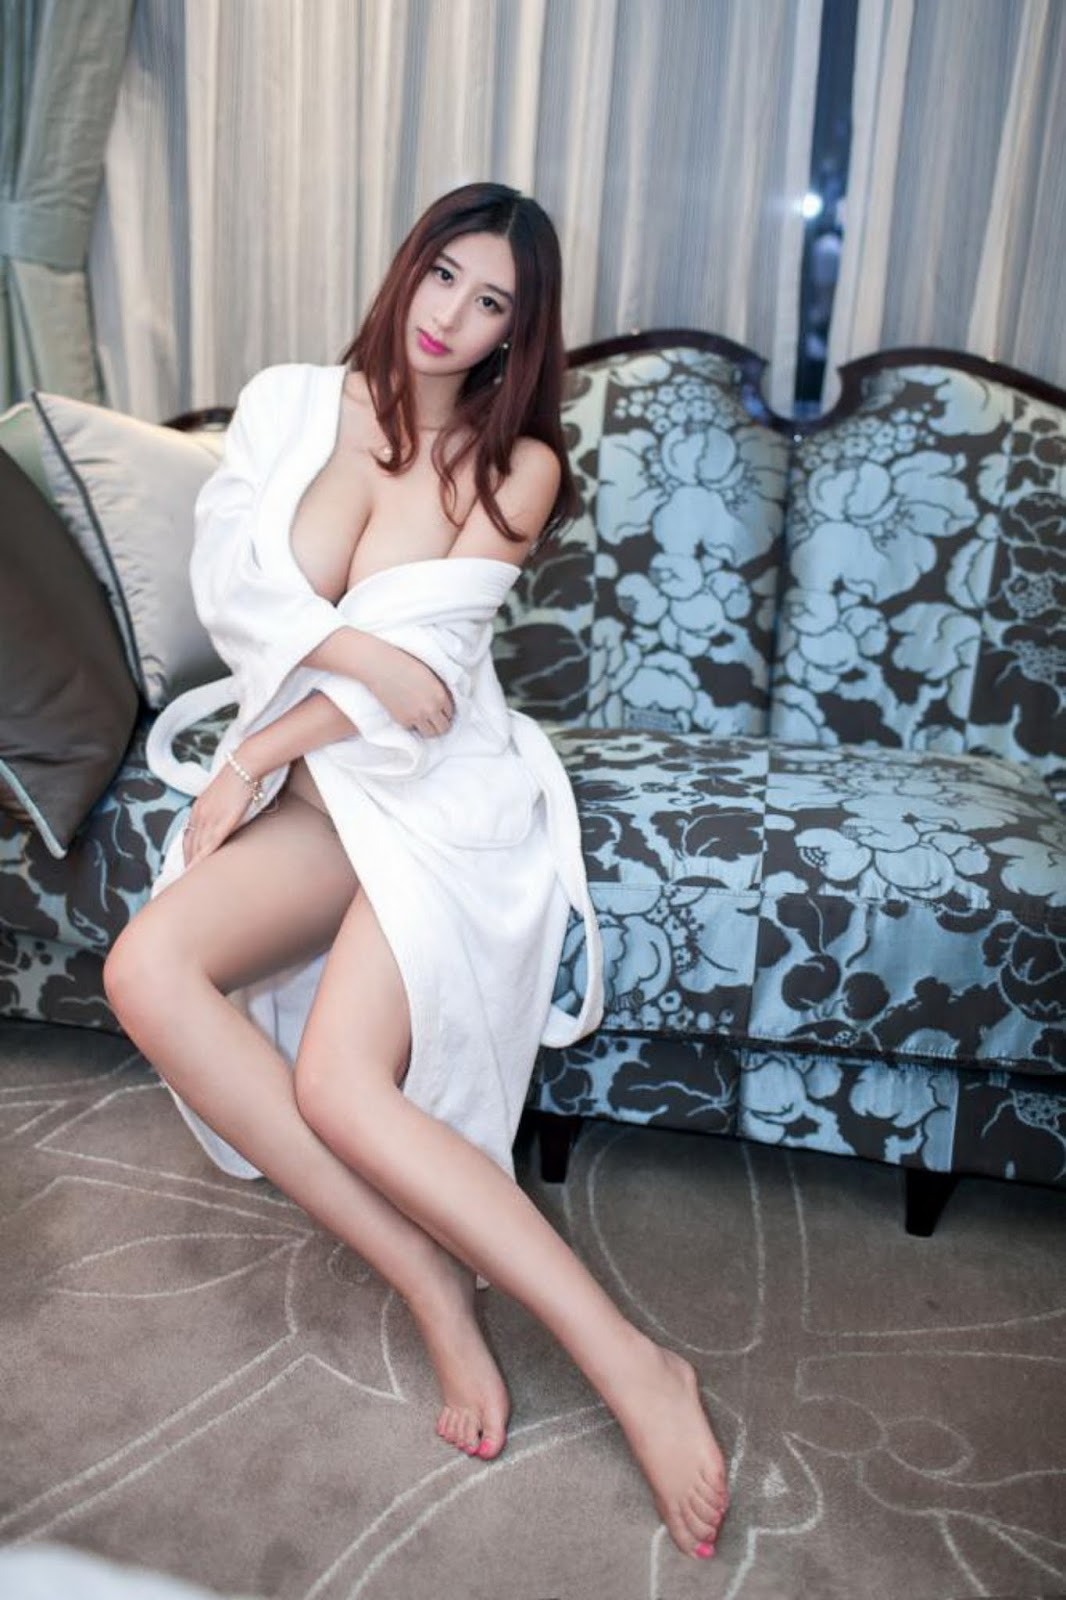 37 - Lake Model Sexy TUIGIRL NO.52 Hot